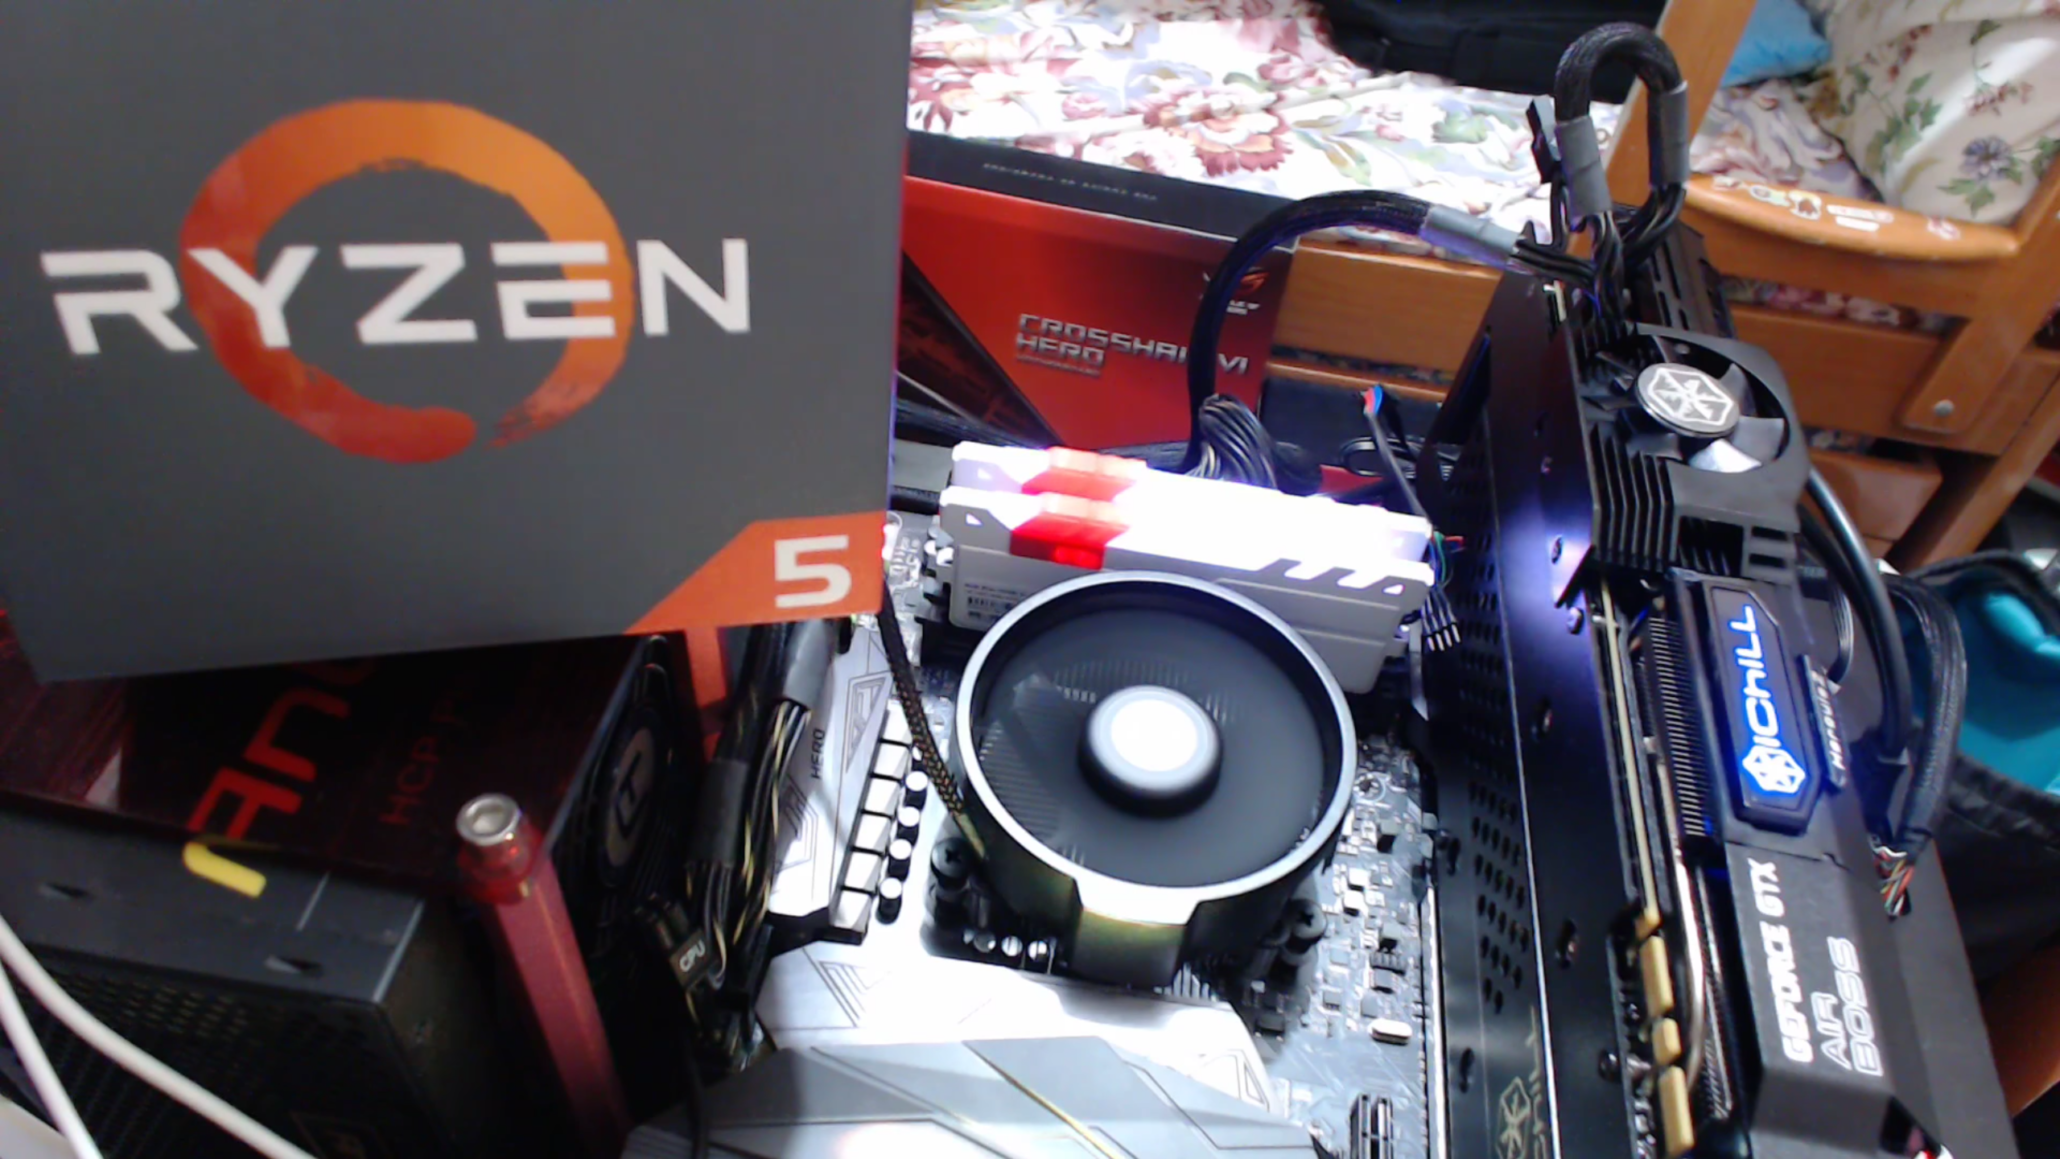 Amd Ryzen 5 1400 Cpu Overclocked Performance Benchmarks Leaked